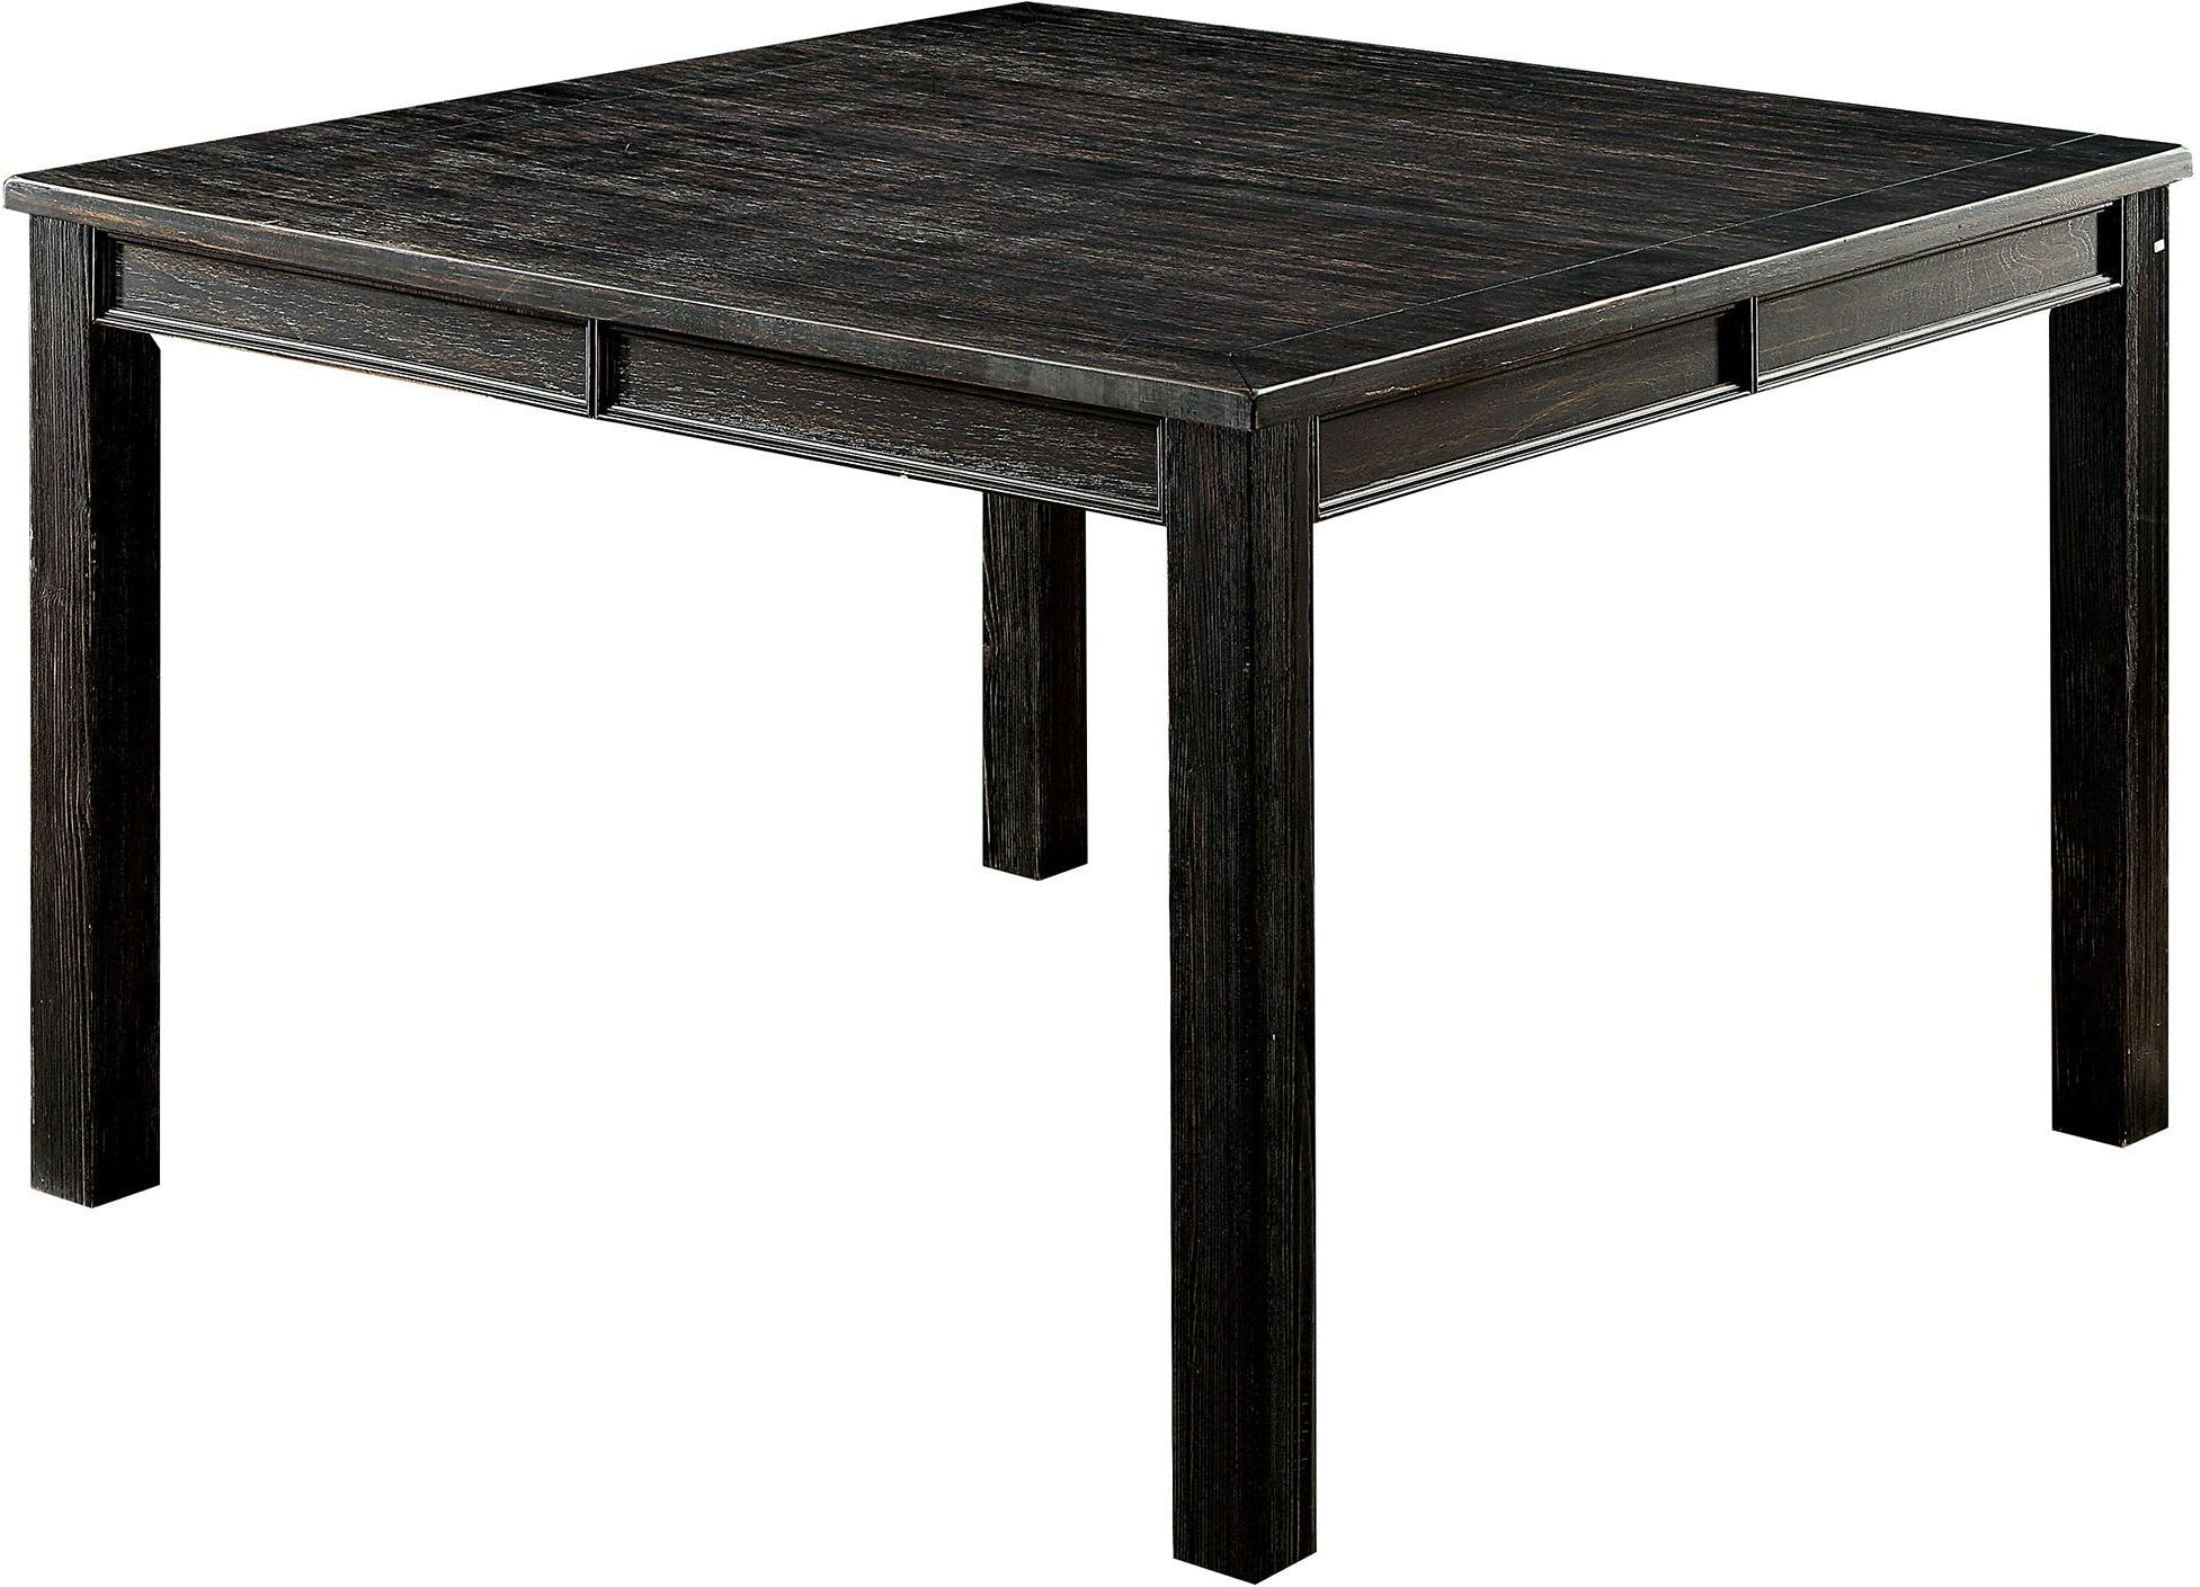 Dining Table Height Cm Sania Iii Antique Black Counter Height Dining Table From